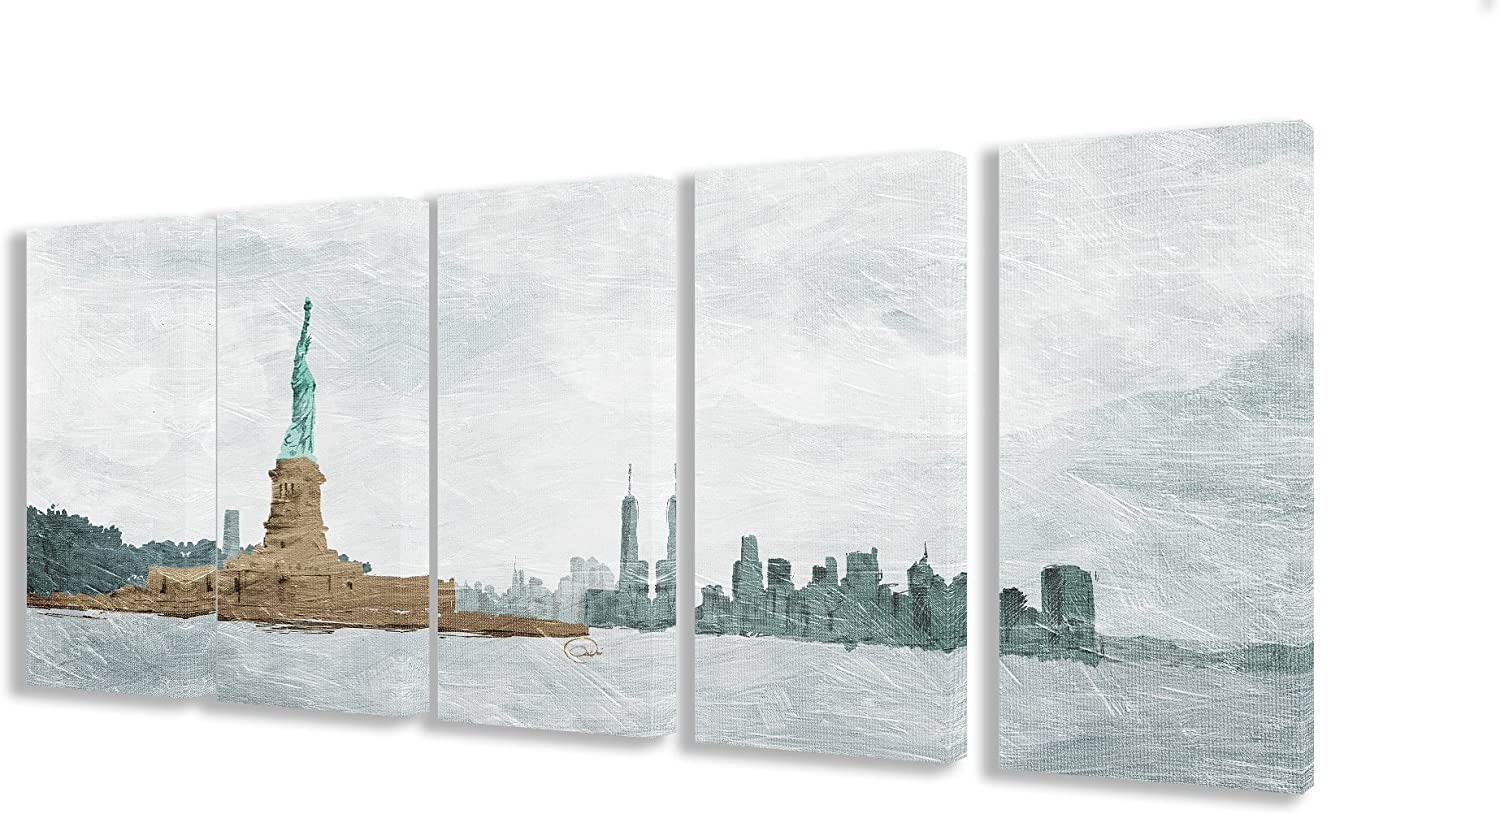 Stupell Home Décor New York State of Mind 5pc Stretched Canvas Wall Art Set, 10 x 1.5 x 21, Proudly Made in USA